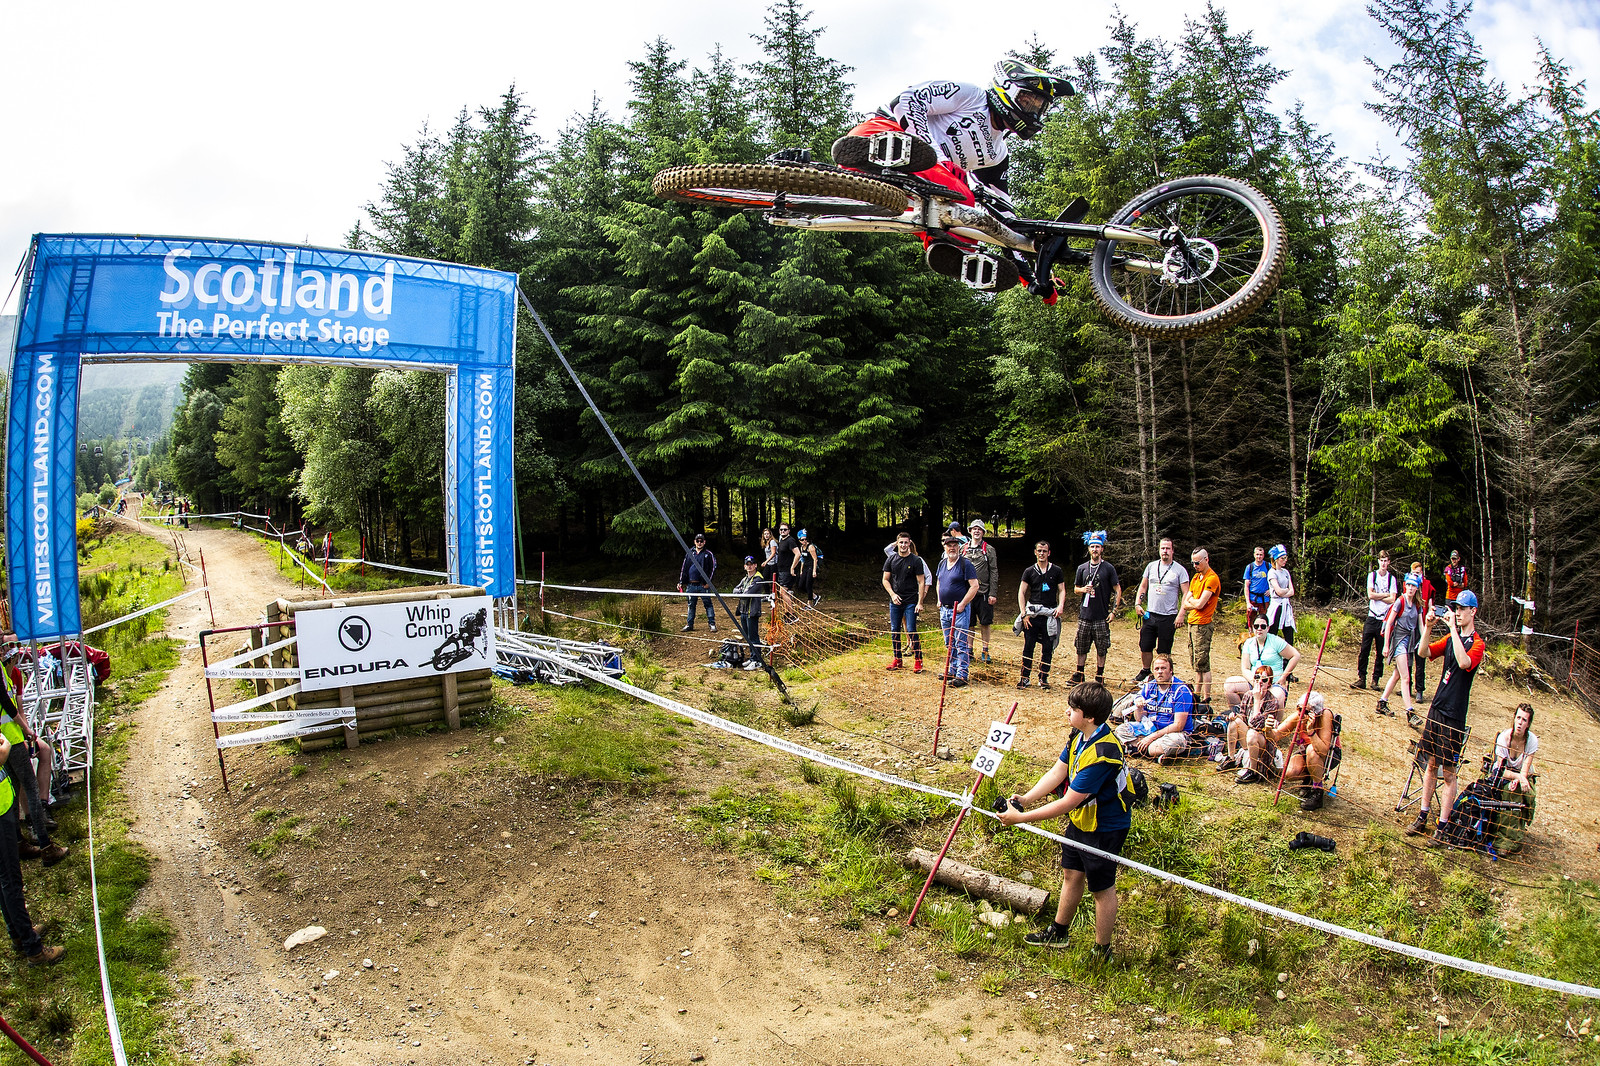 Brendan - Fort William World Cup DH Whips - Mountain Biking Pictures - Vital MTB